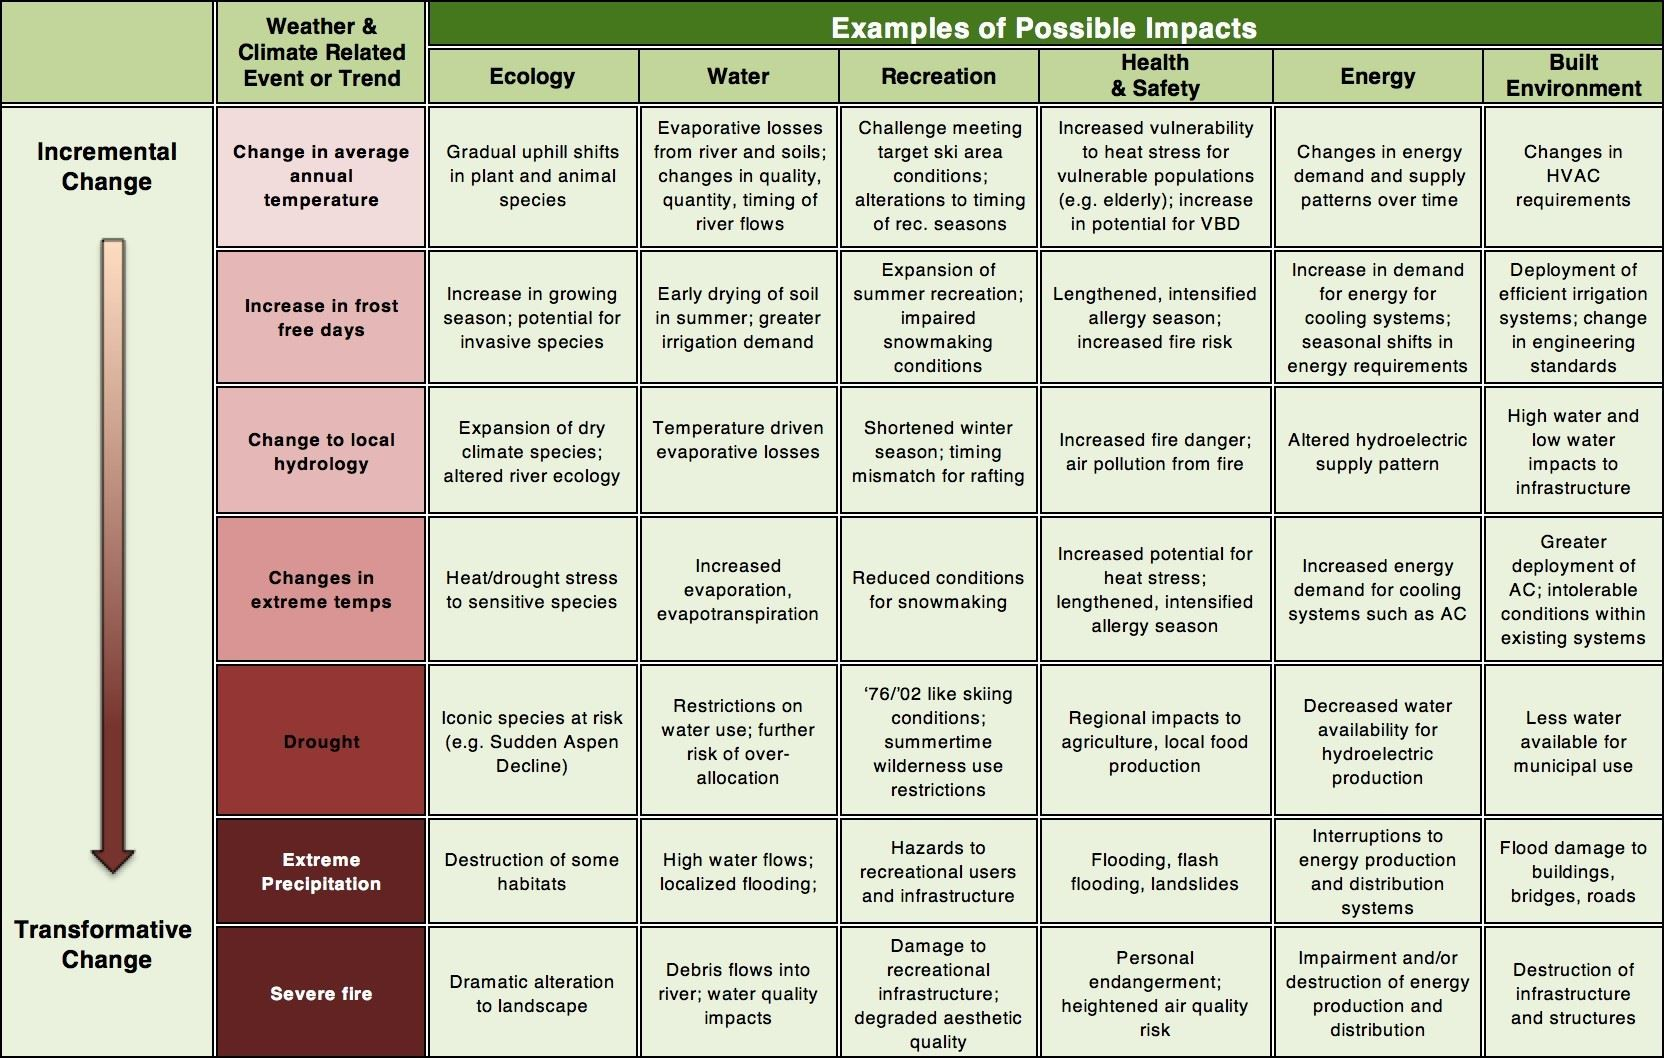 Table 4.1 Summary of Possible Climate Impacts by Sector